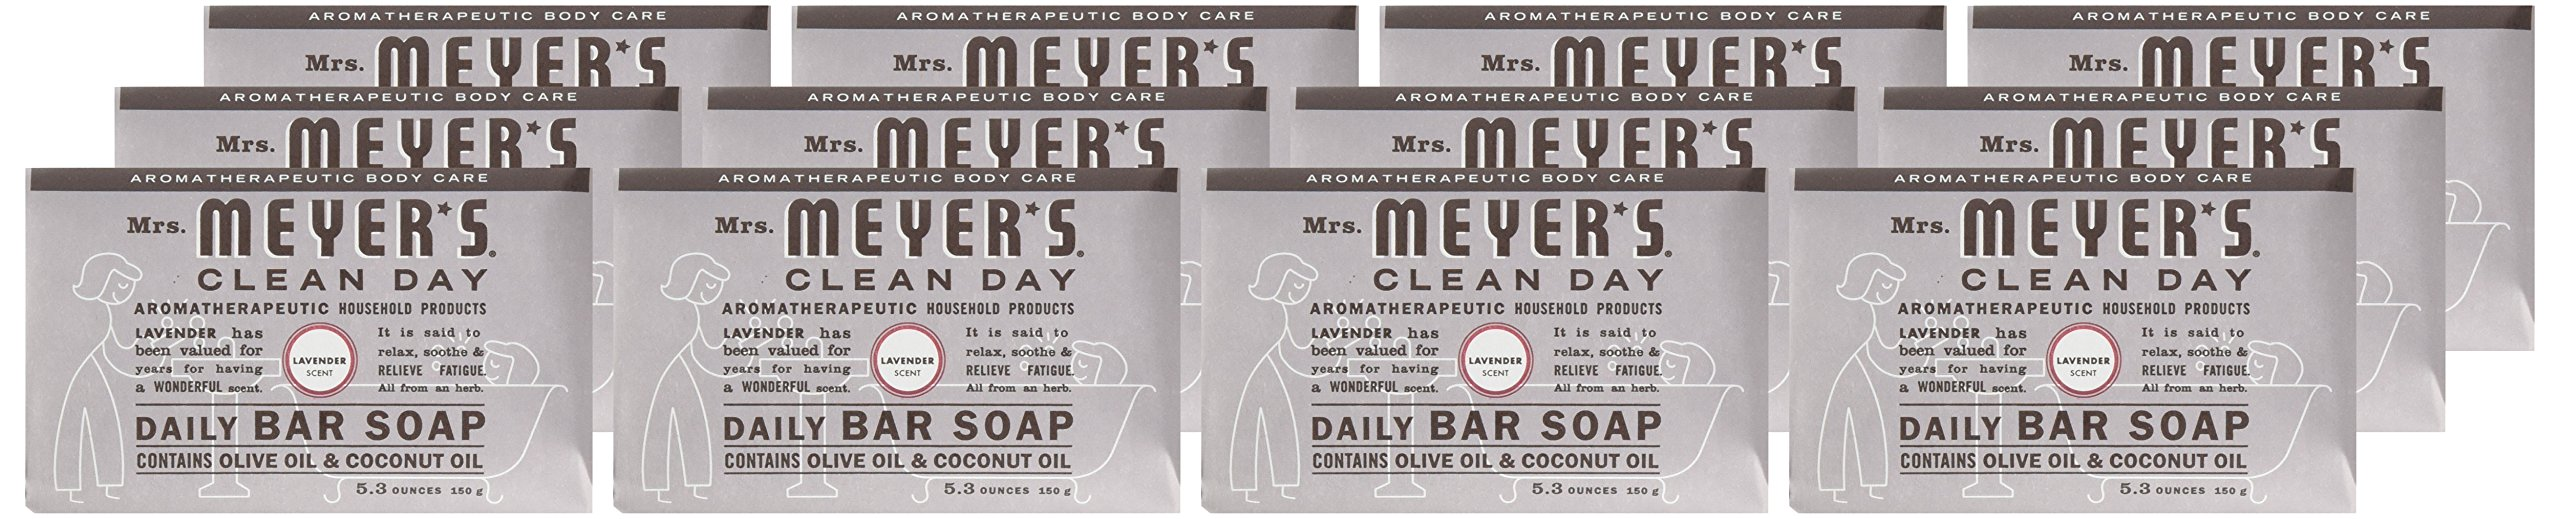 Mrs Meyers Bar Soap Hard 5.3oz Lavender Scent, 12 Count by Mrs. Meyer's Clean Day (Image #2)